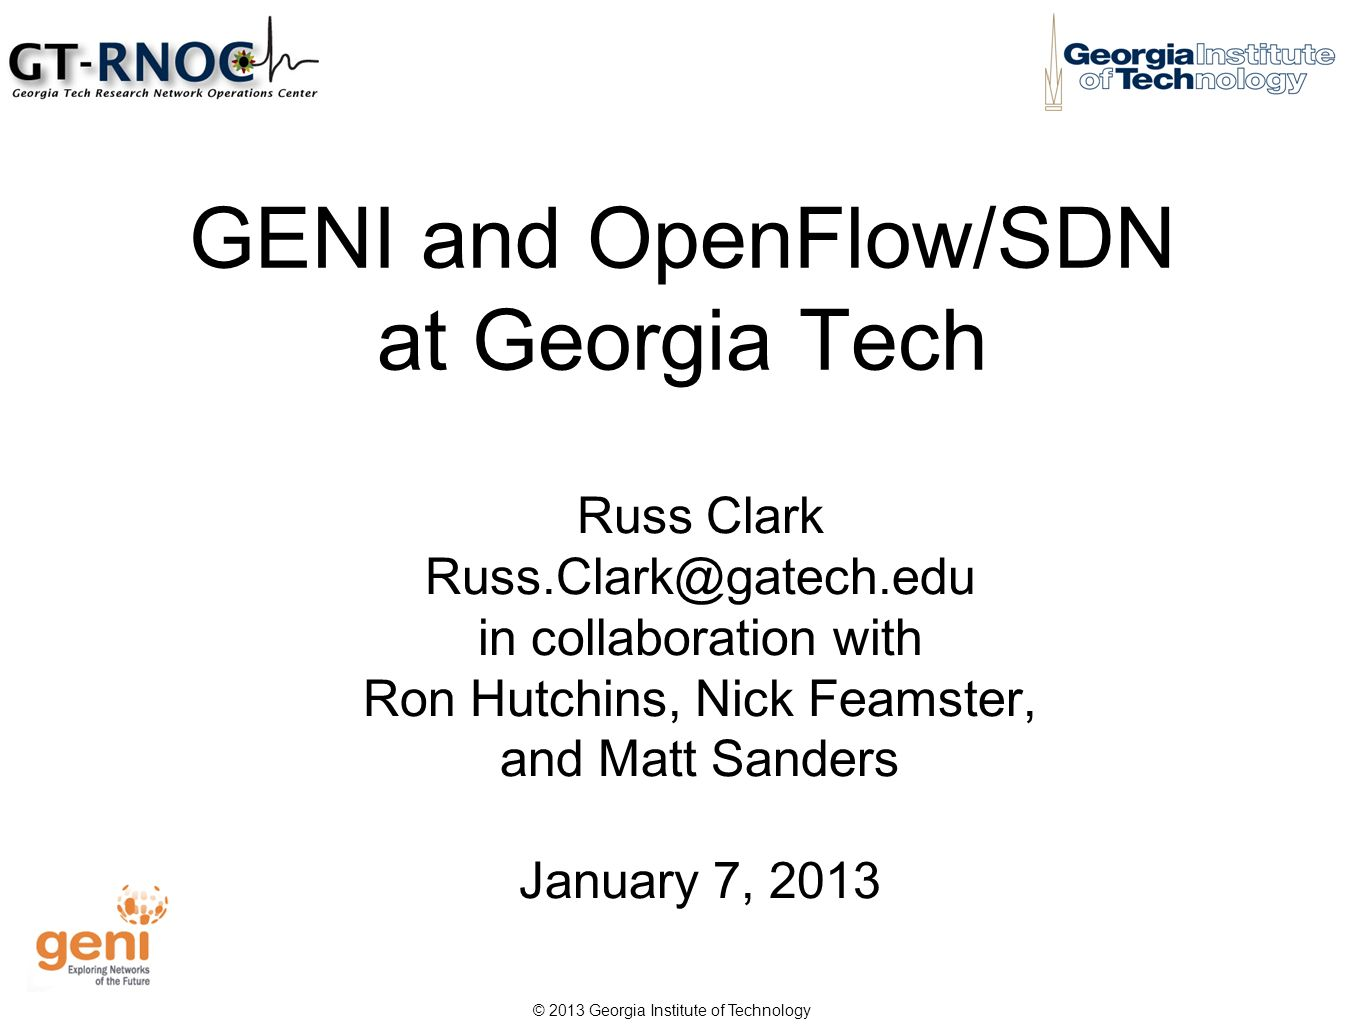 © 2013 Georgia Institute of Technology GENI and OpenFlow/SDN at Georgia Tech Russ Clark Russ.Clark@gatech.edu in collaboration with Ron Hutchins, Nick Feamster, and Matt Sanders January 7, 2013